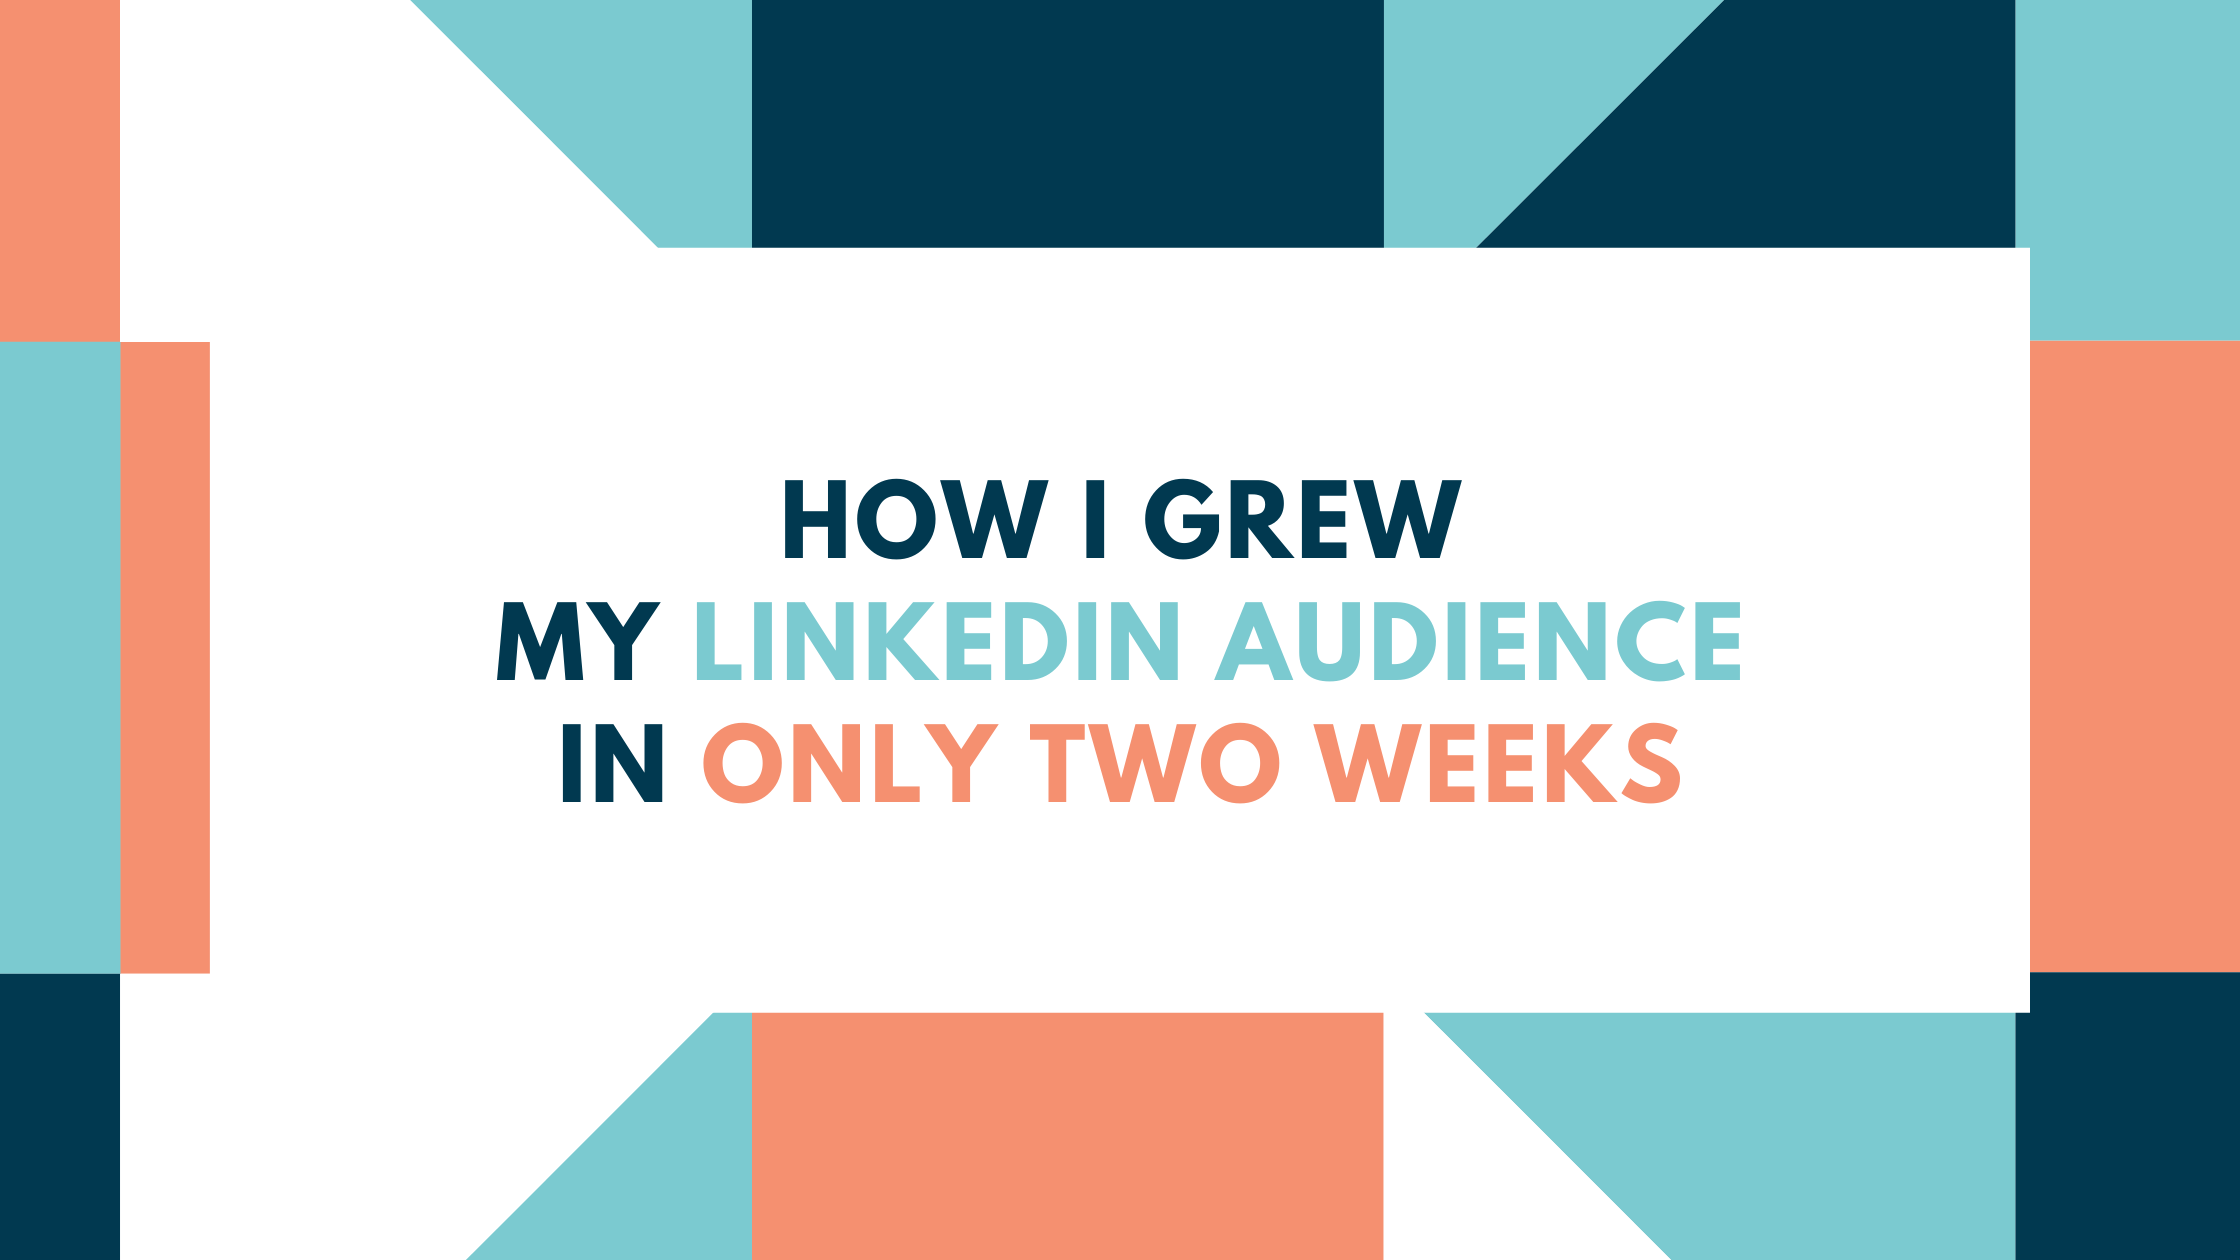 How I Grew My LinkedIn Audience in Only Two Weeks